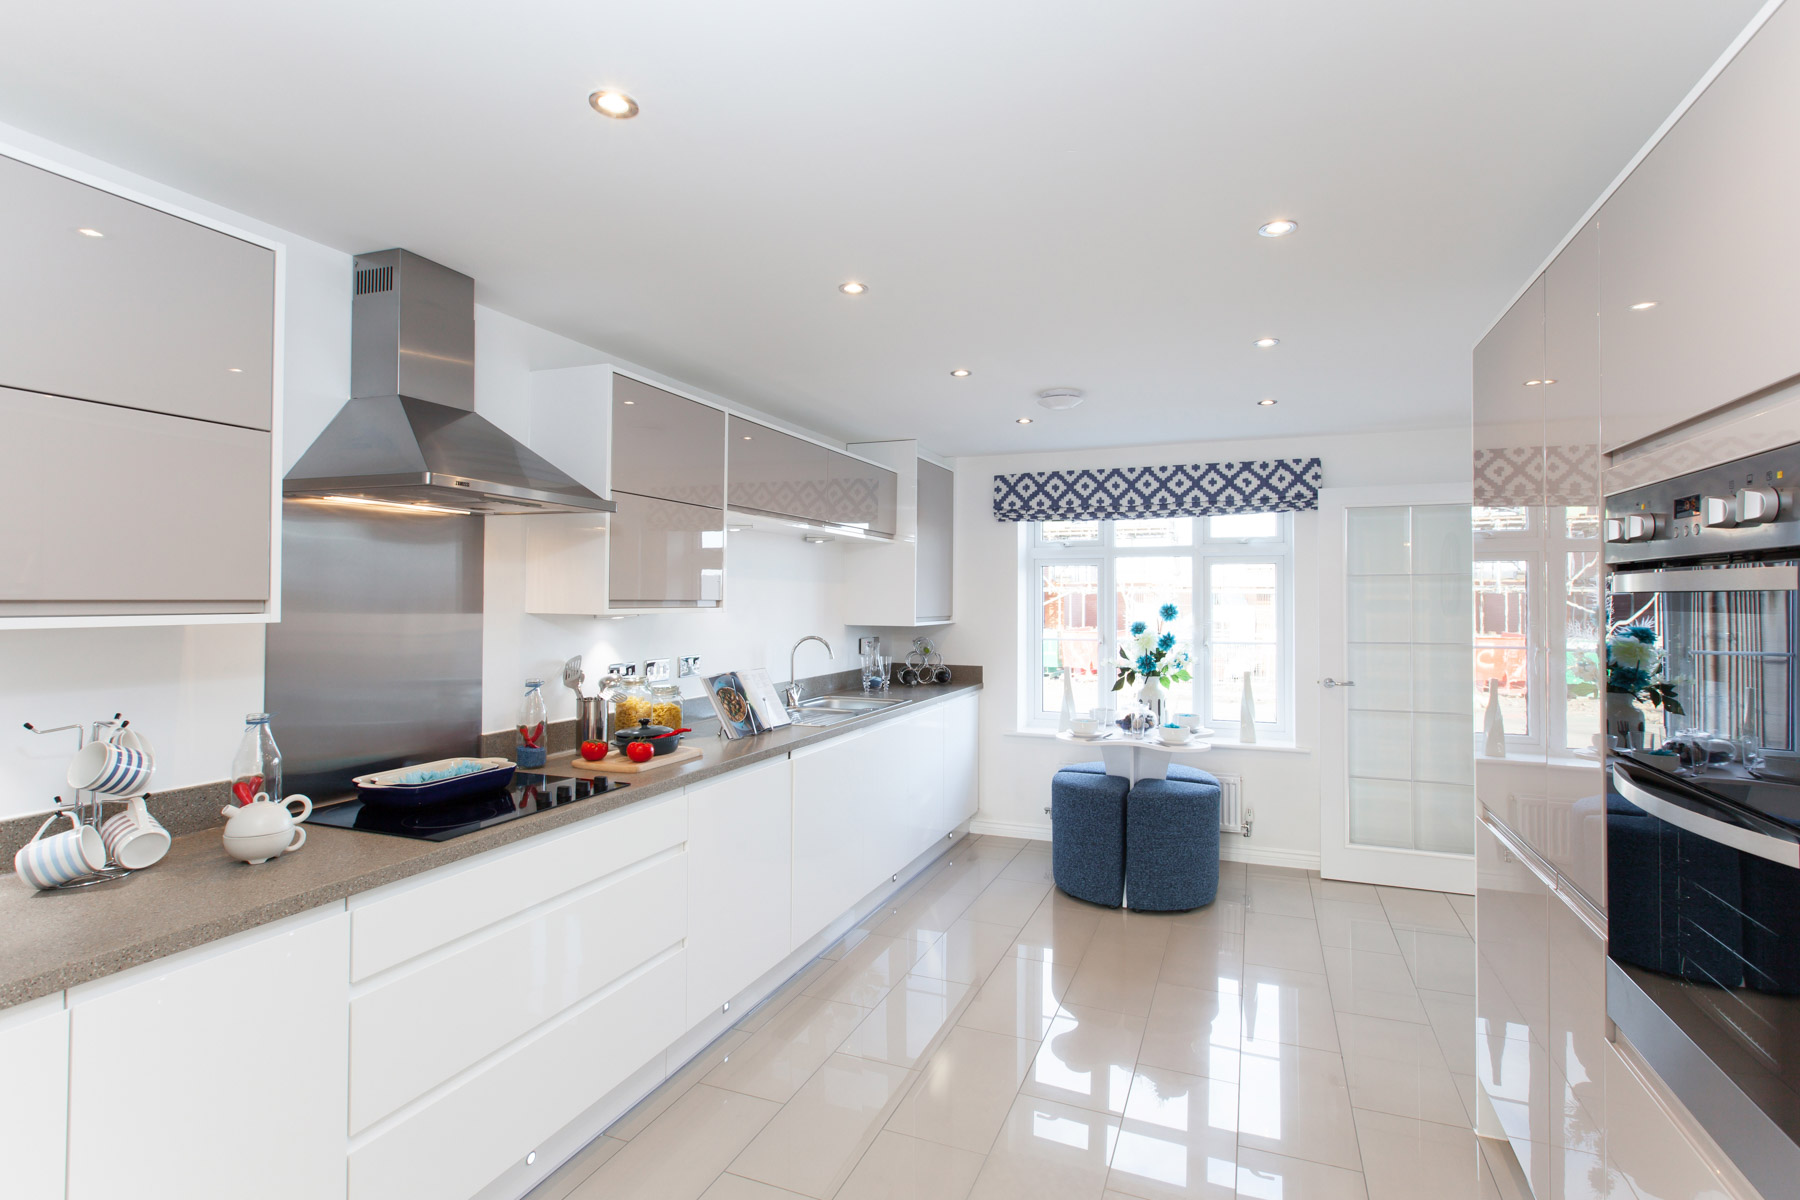 TW Exeter - Chy An Dowr - Thornford example kitchen